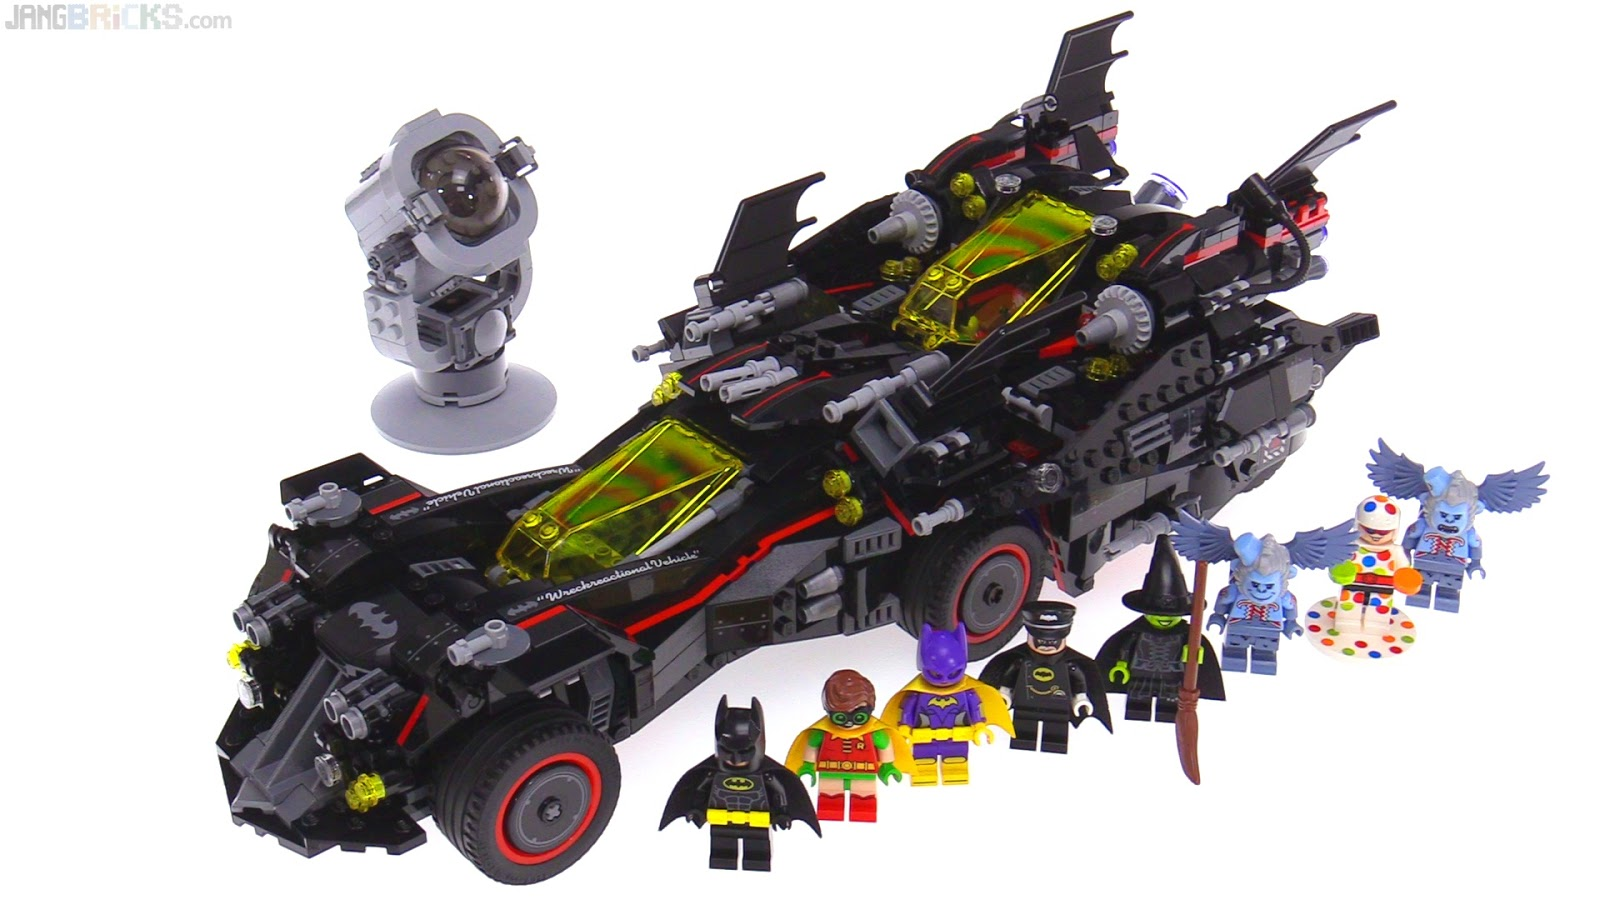 lego batman 3 batmobile - photo #32